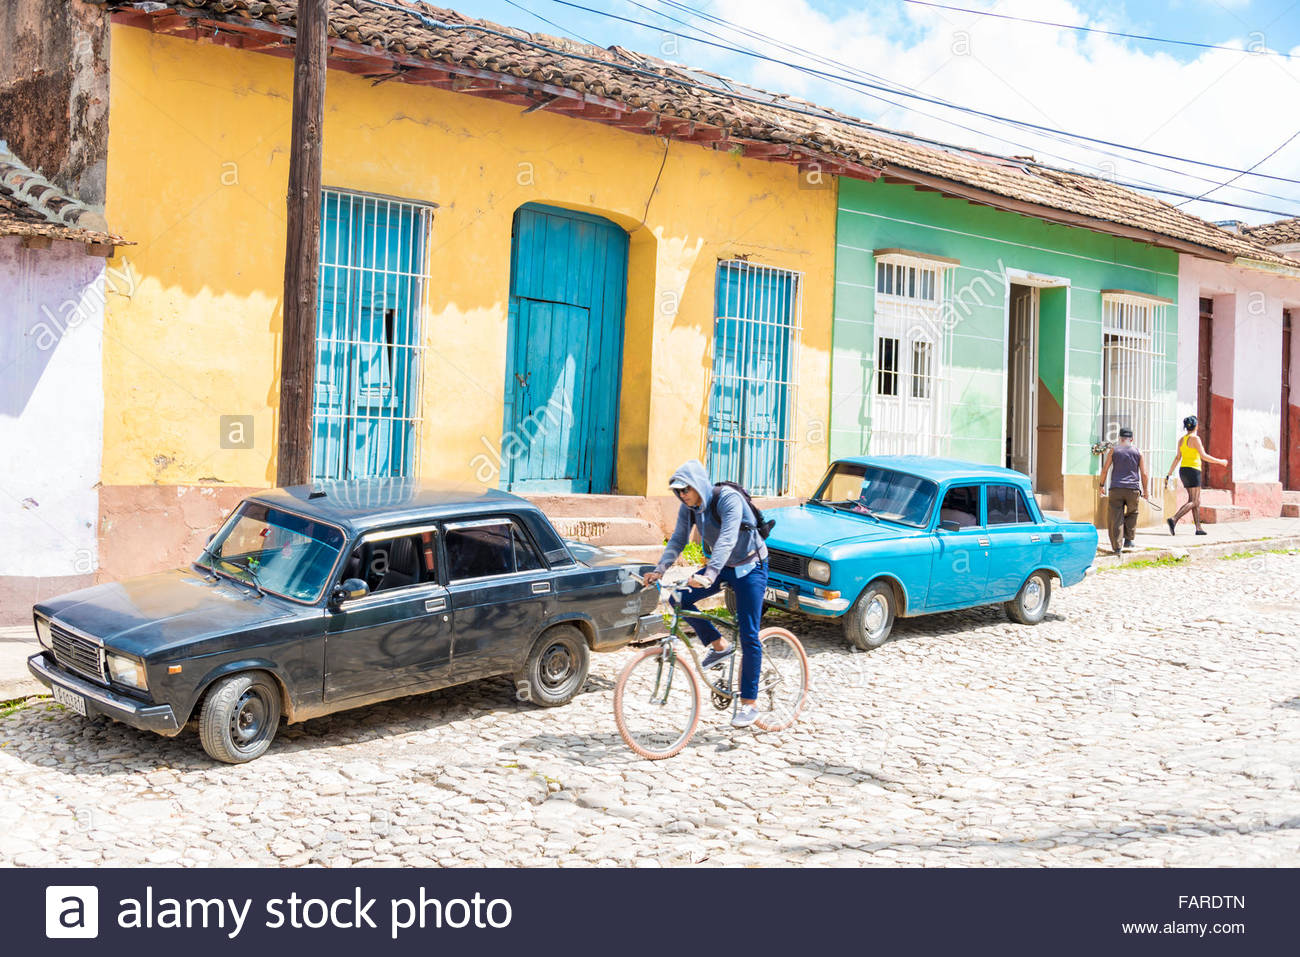 Parked Cars And Hispanic Colonial Houses In Trinidad De Cuba Man